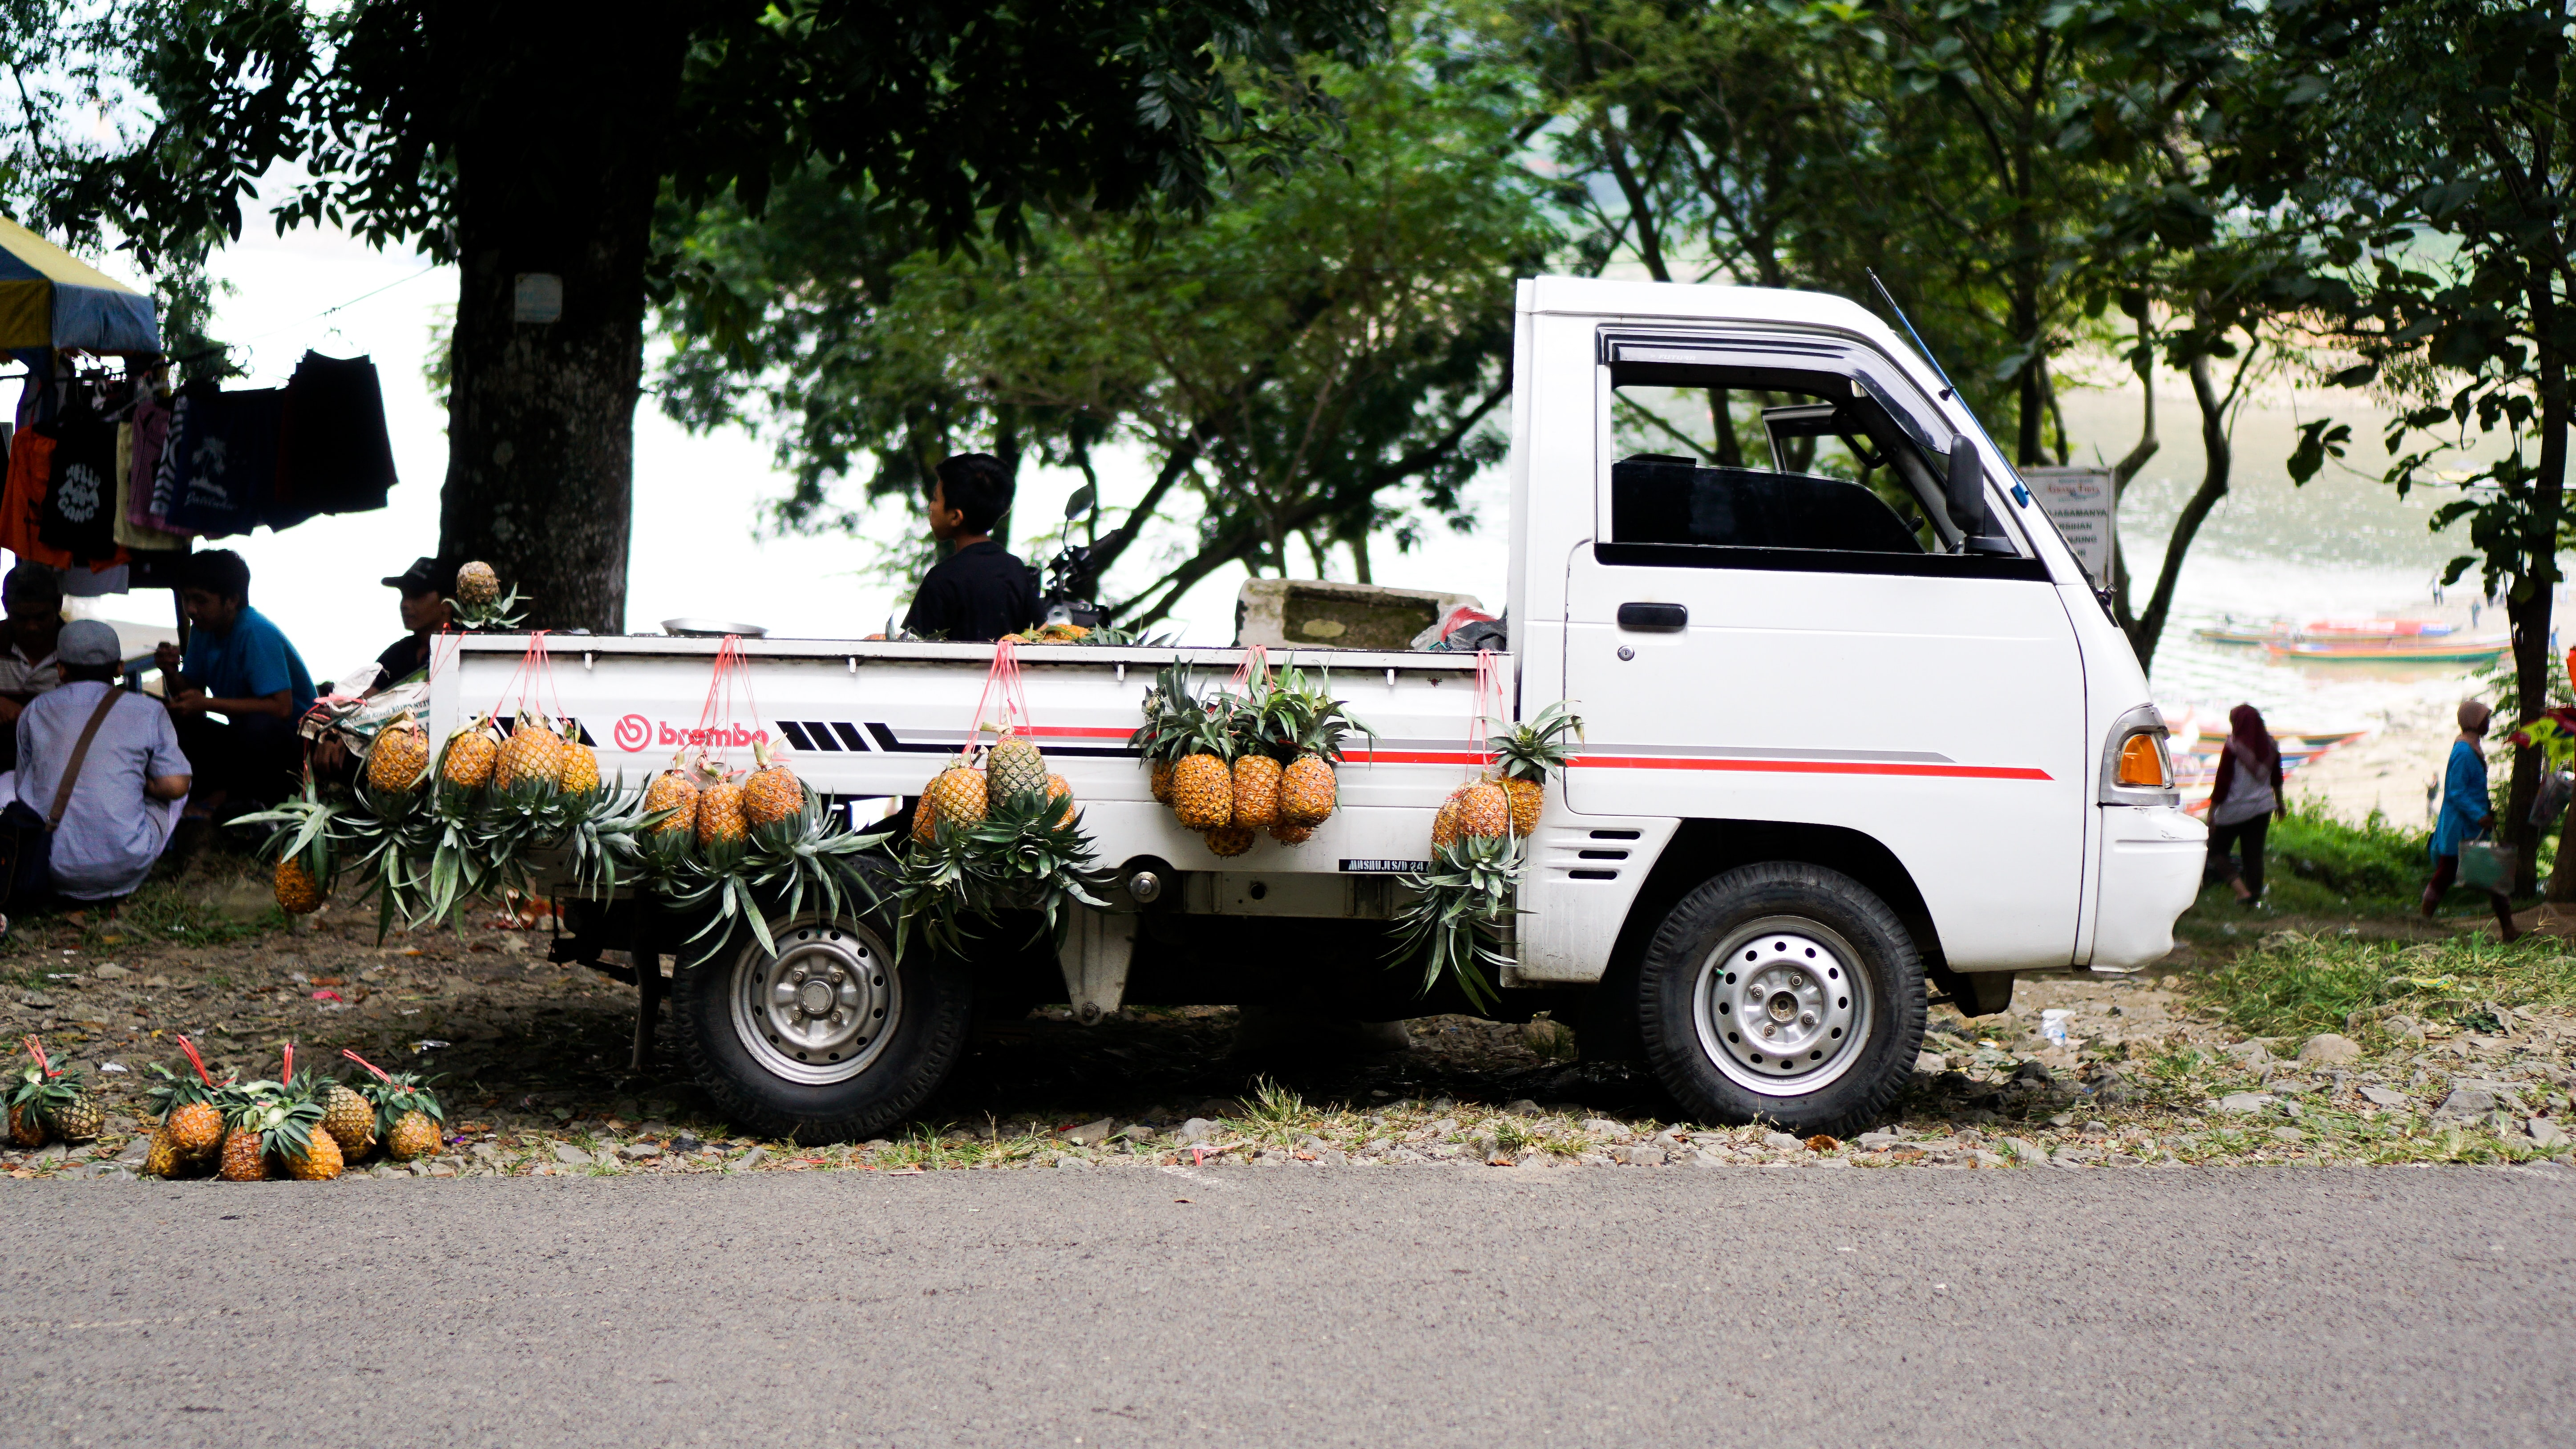 pineapples hanged on dropside truck